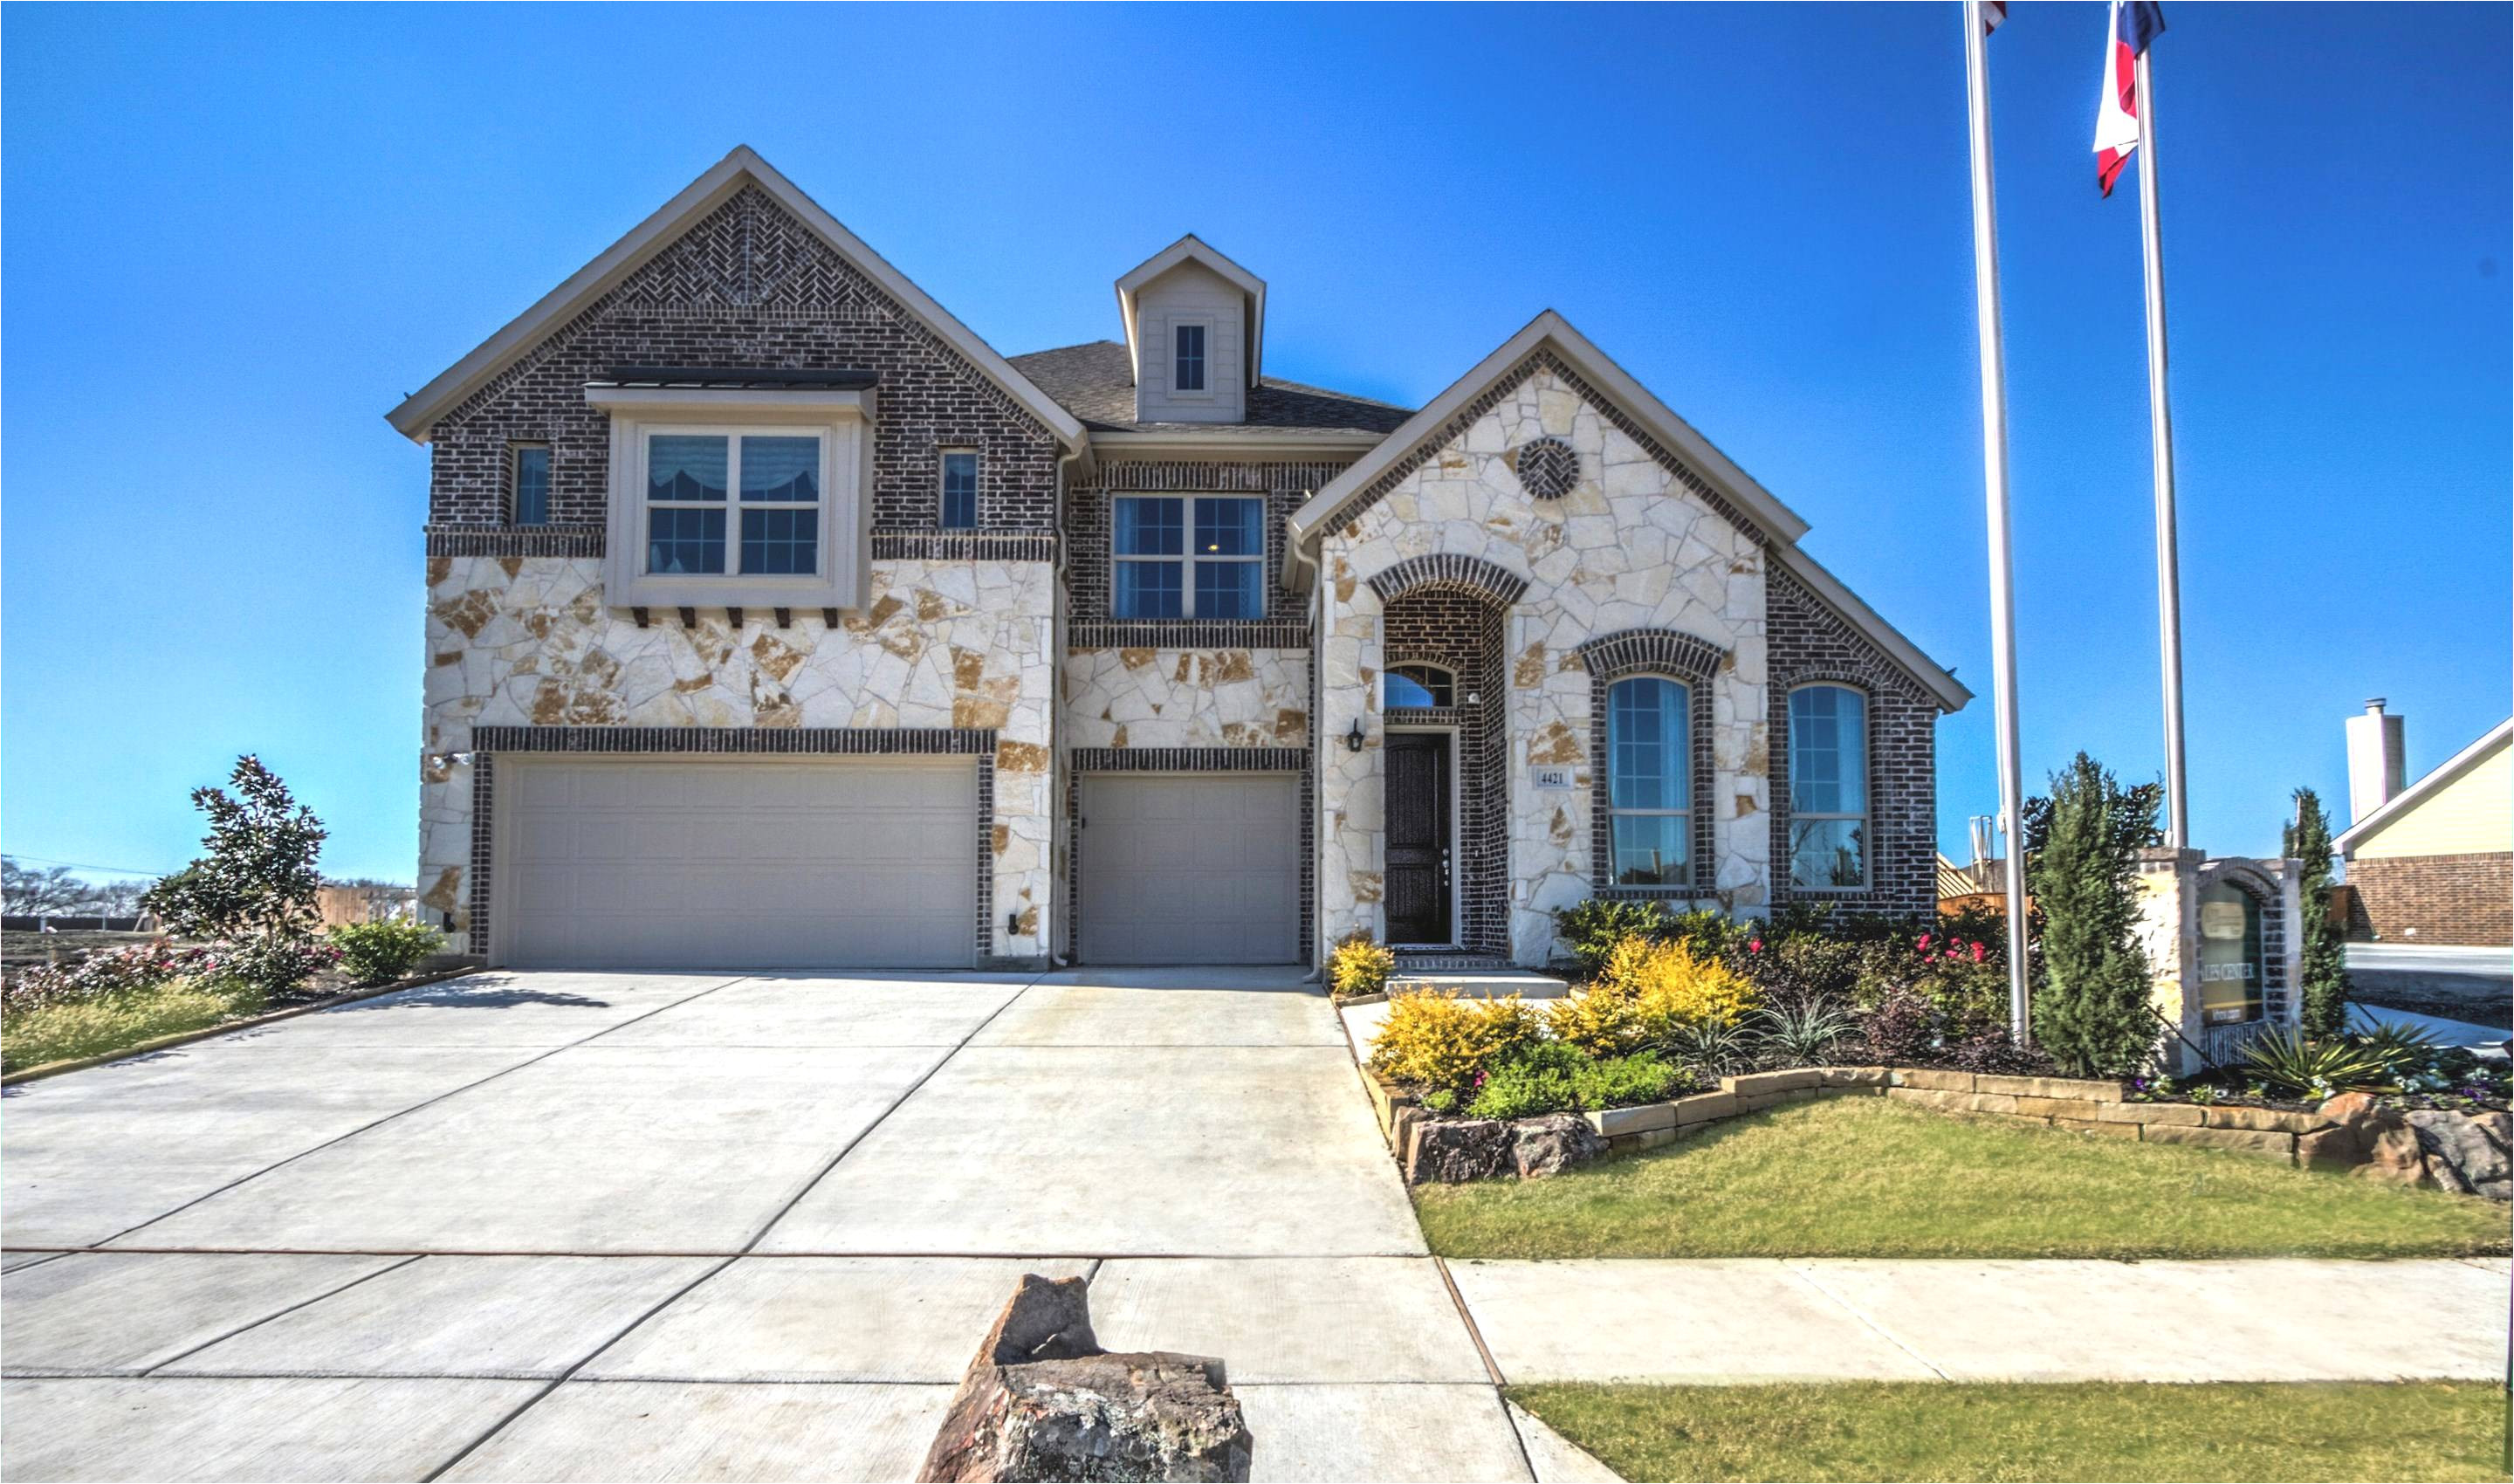 stone exterior in celina light farms cypress new homes texas jpg